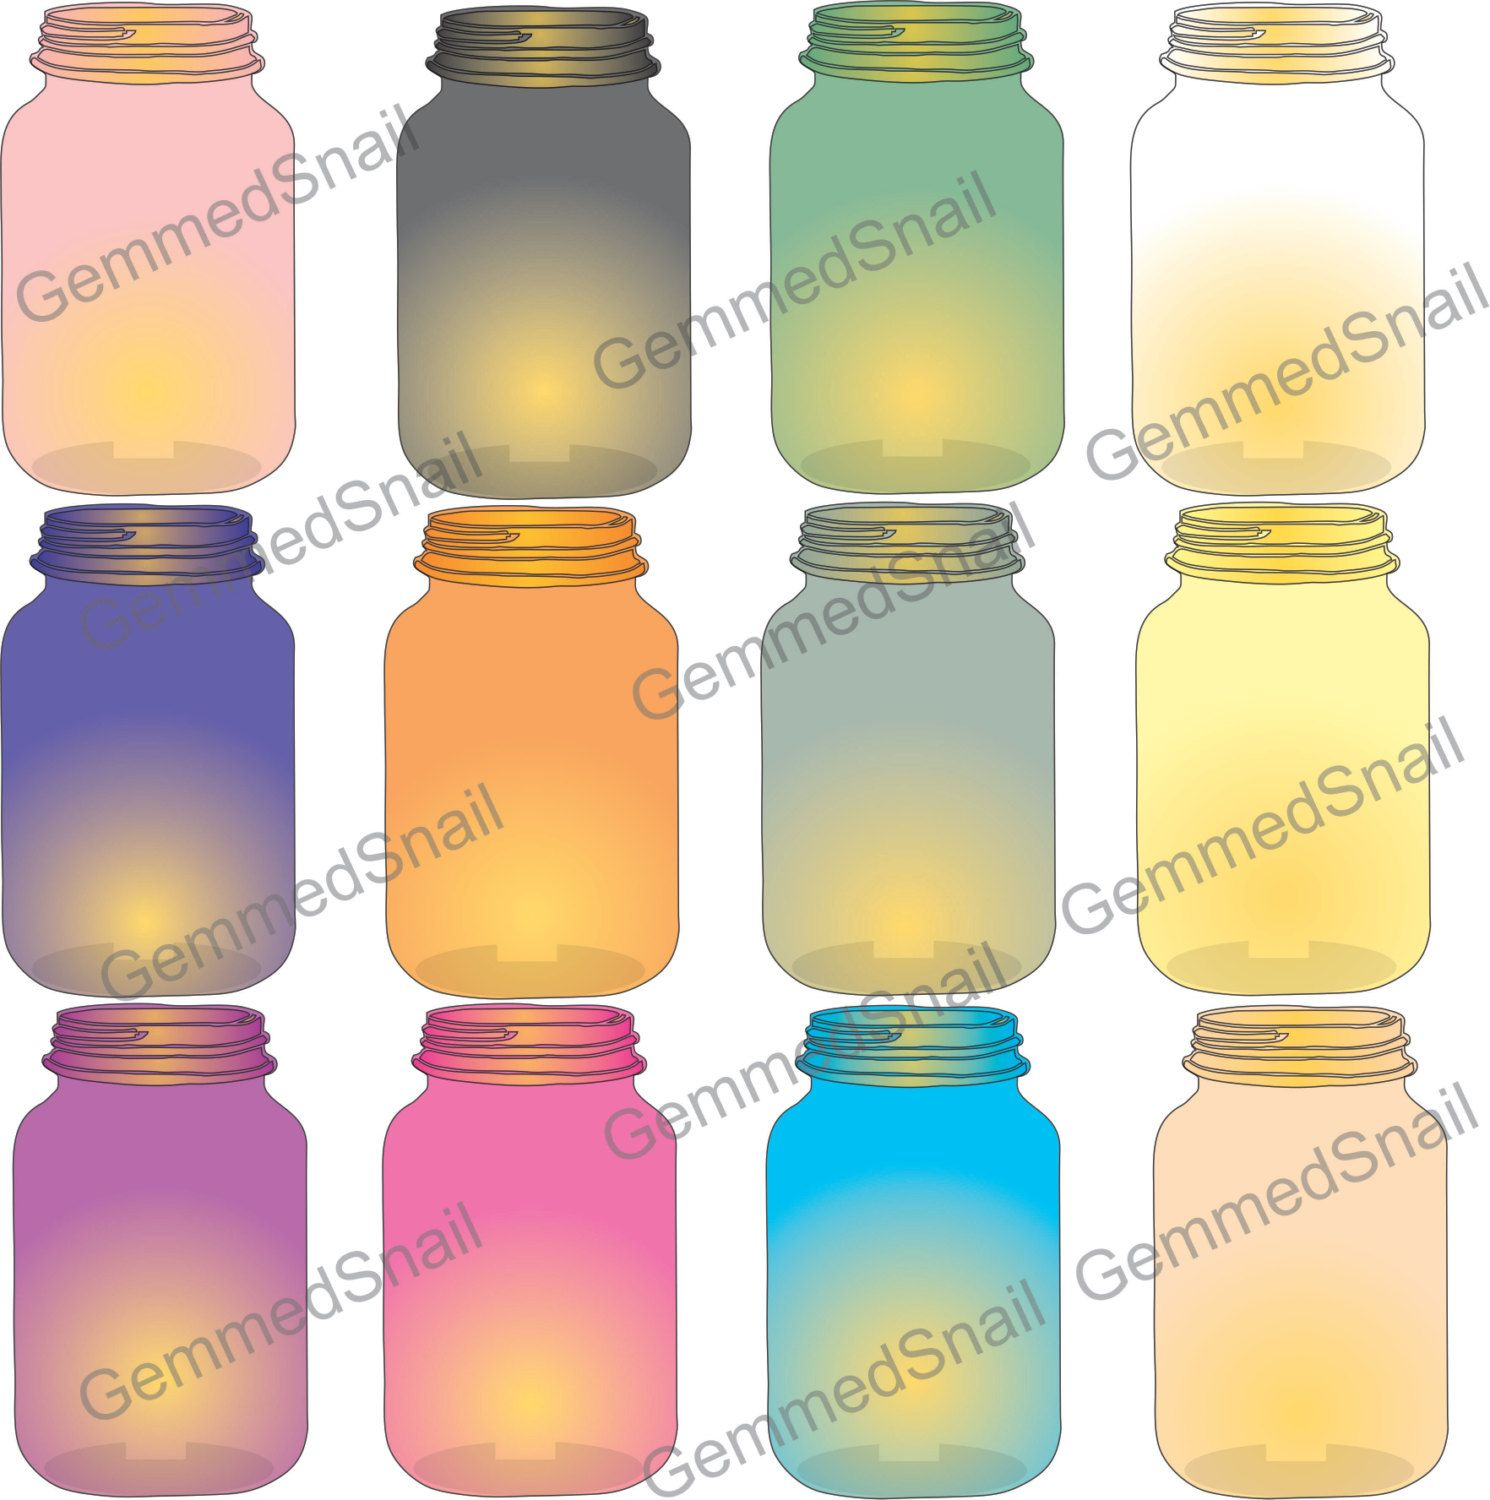 Lantern clipart mason jar clipart colored glass by.